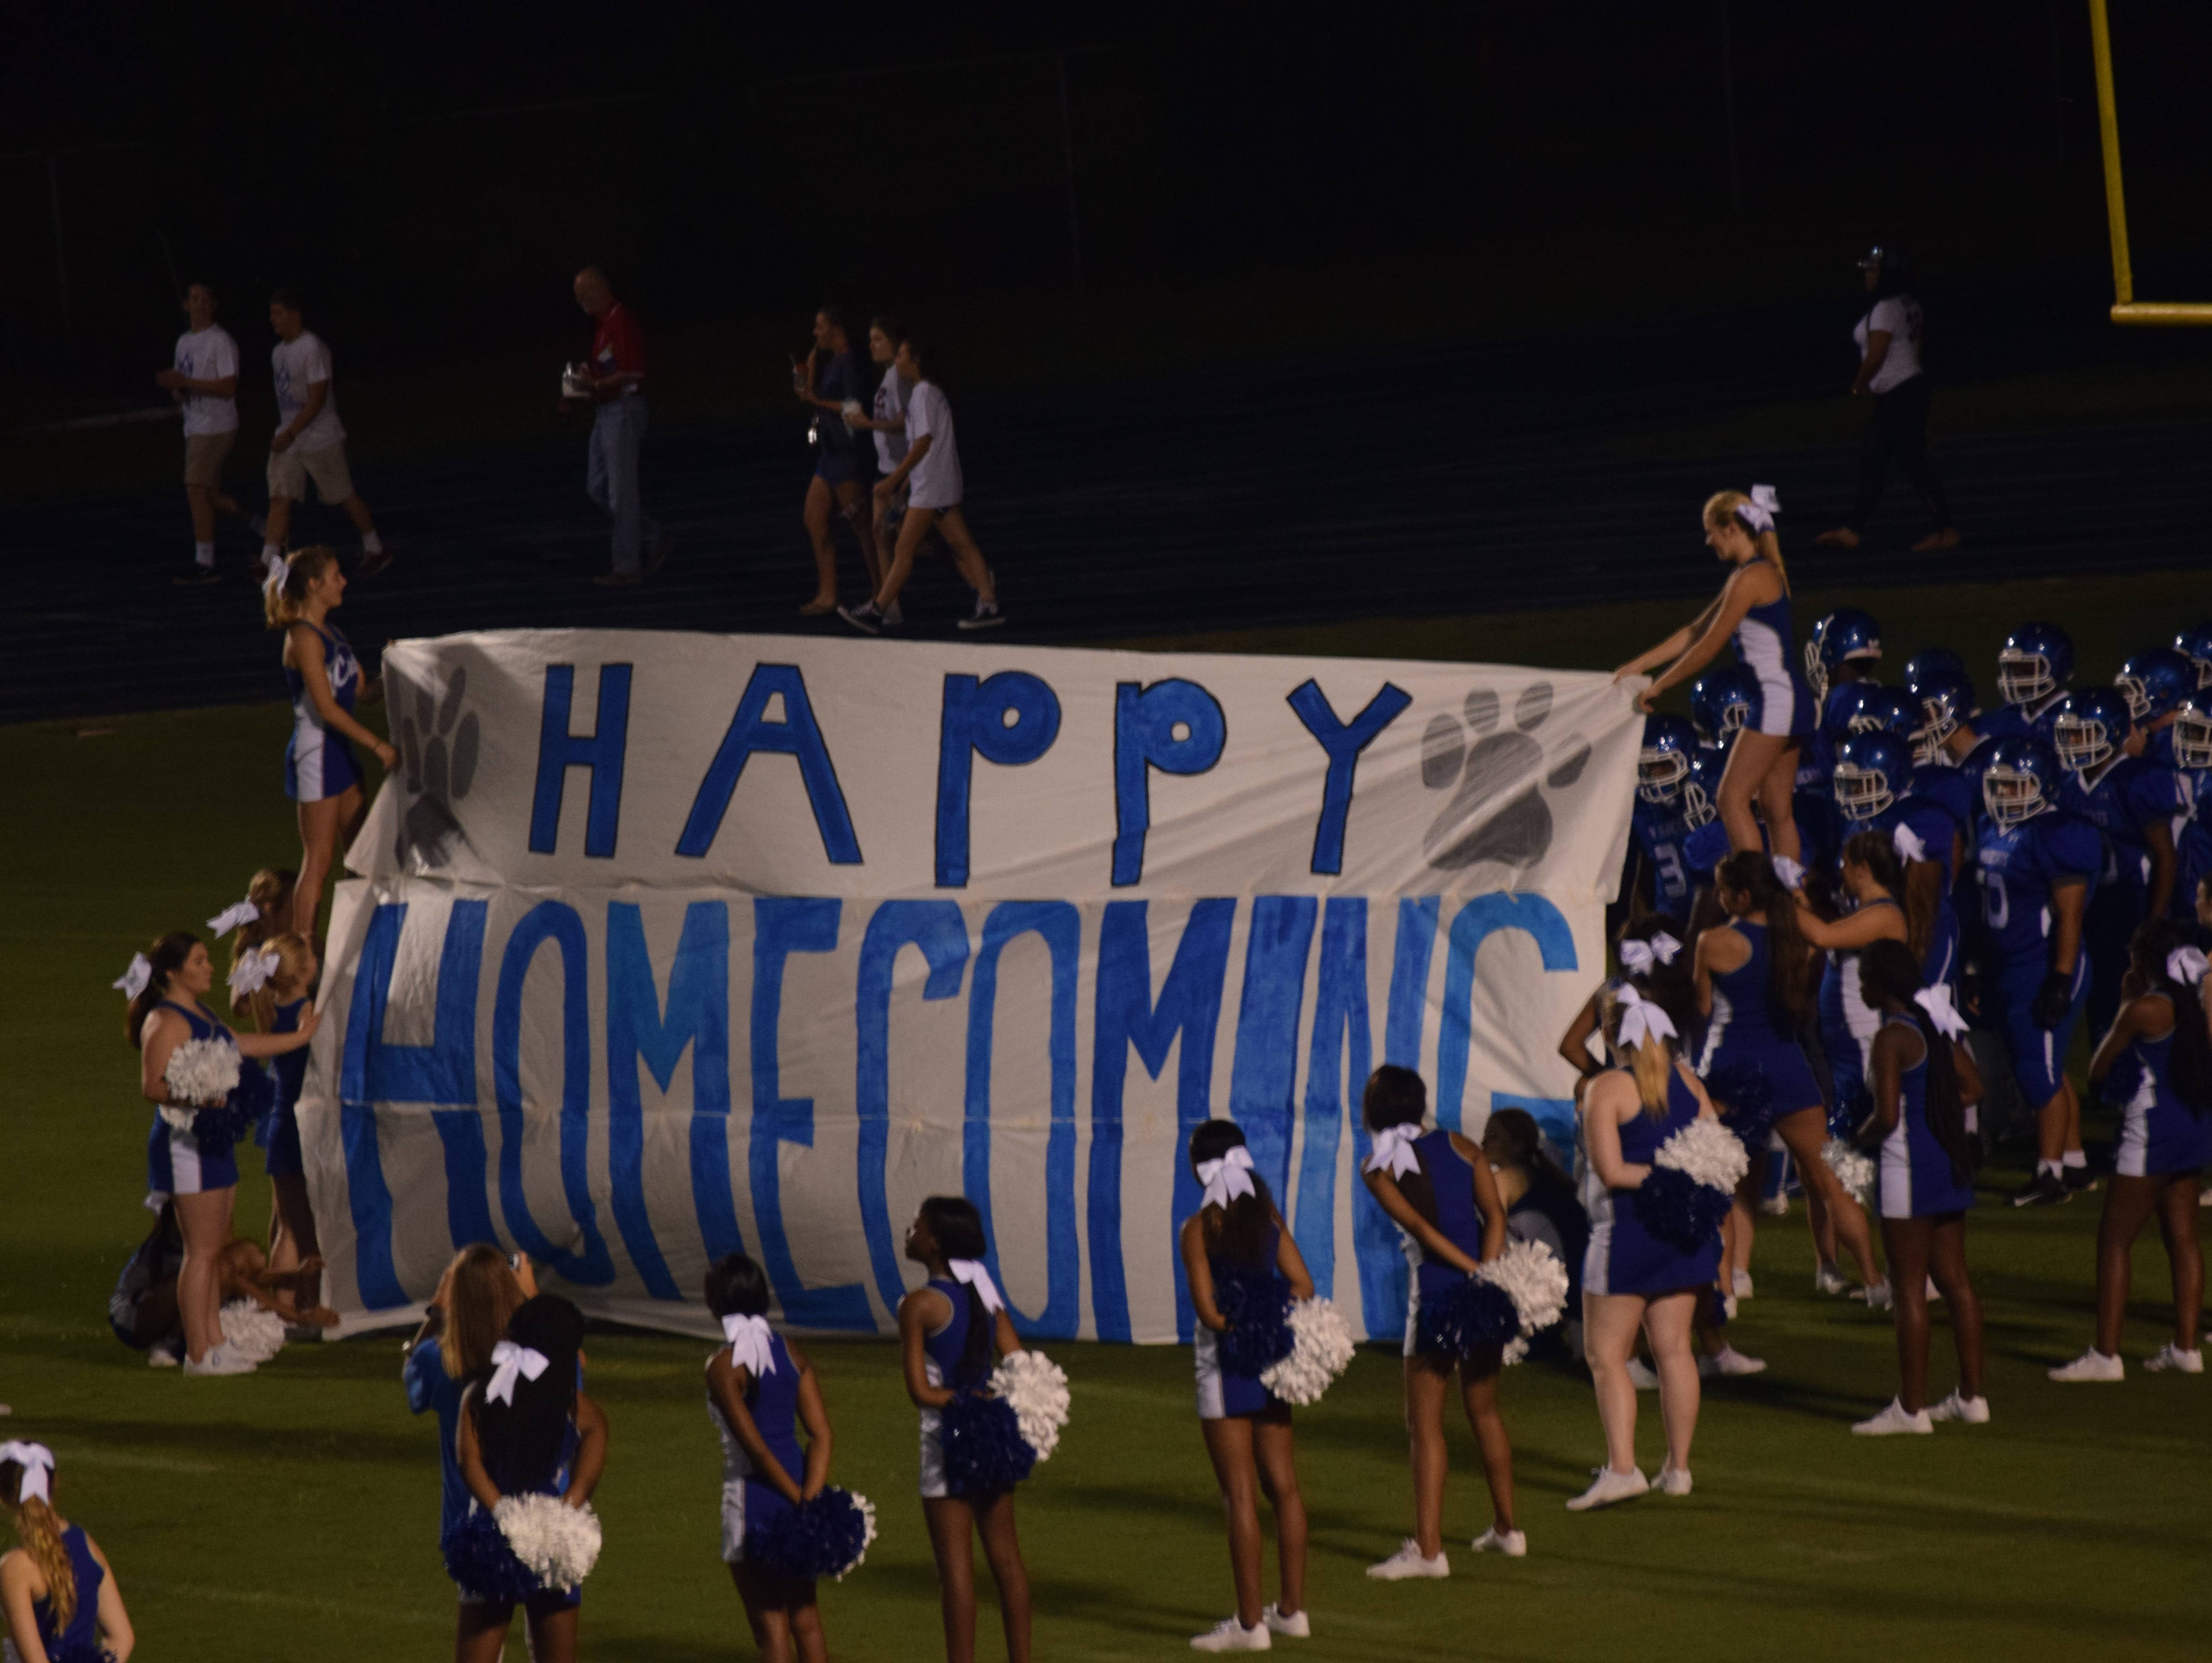 Homecoming night at Washington High against Pace.